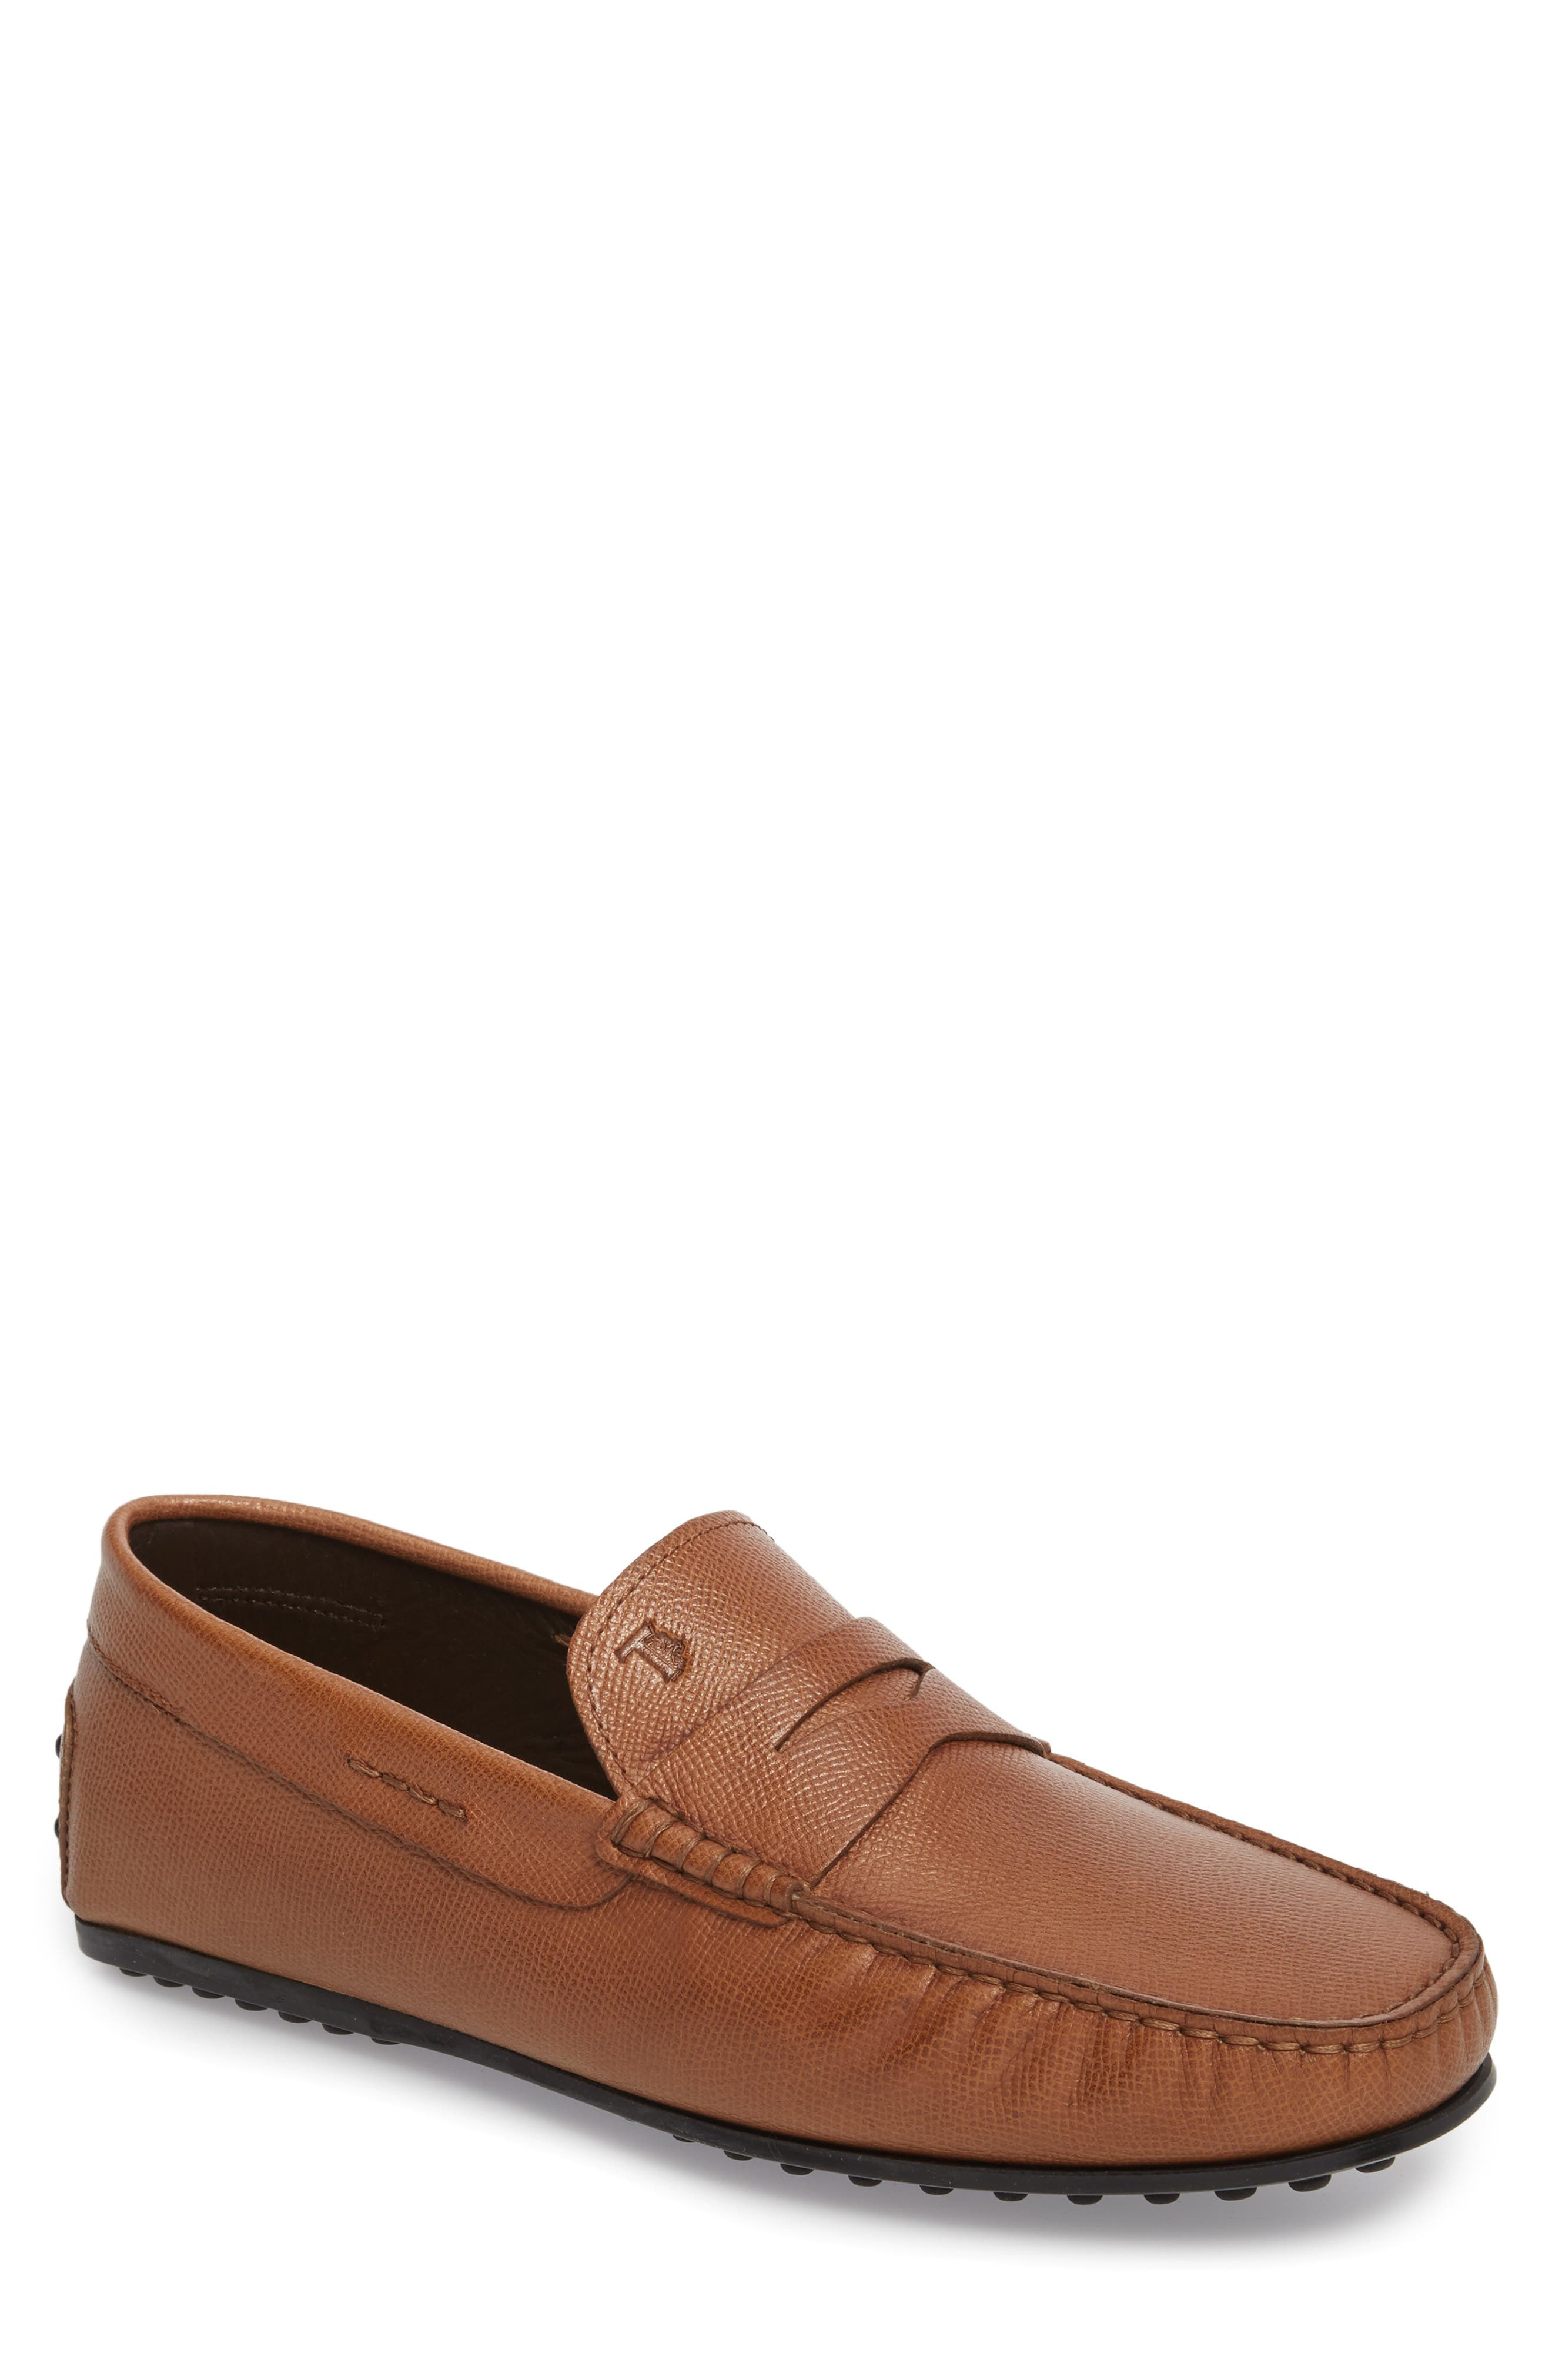 City Driving Shoe,                         Main,                         color, TAN LEATHER